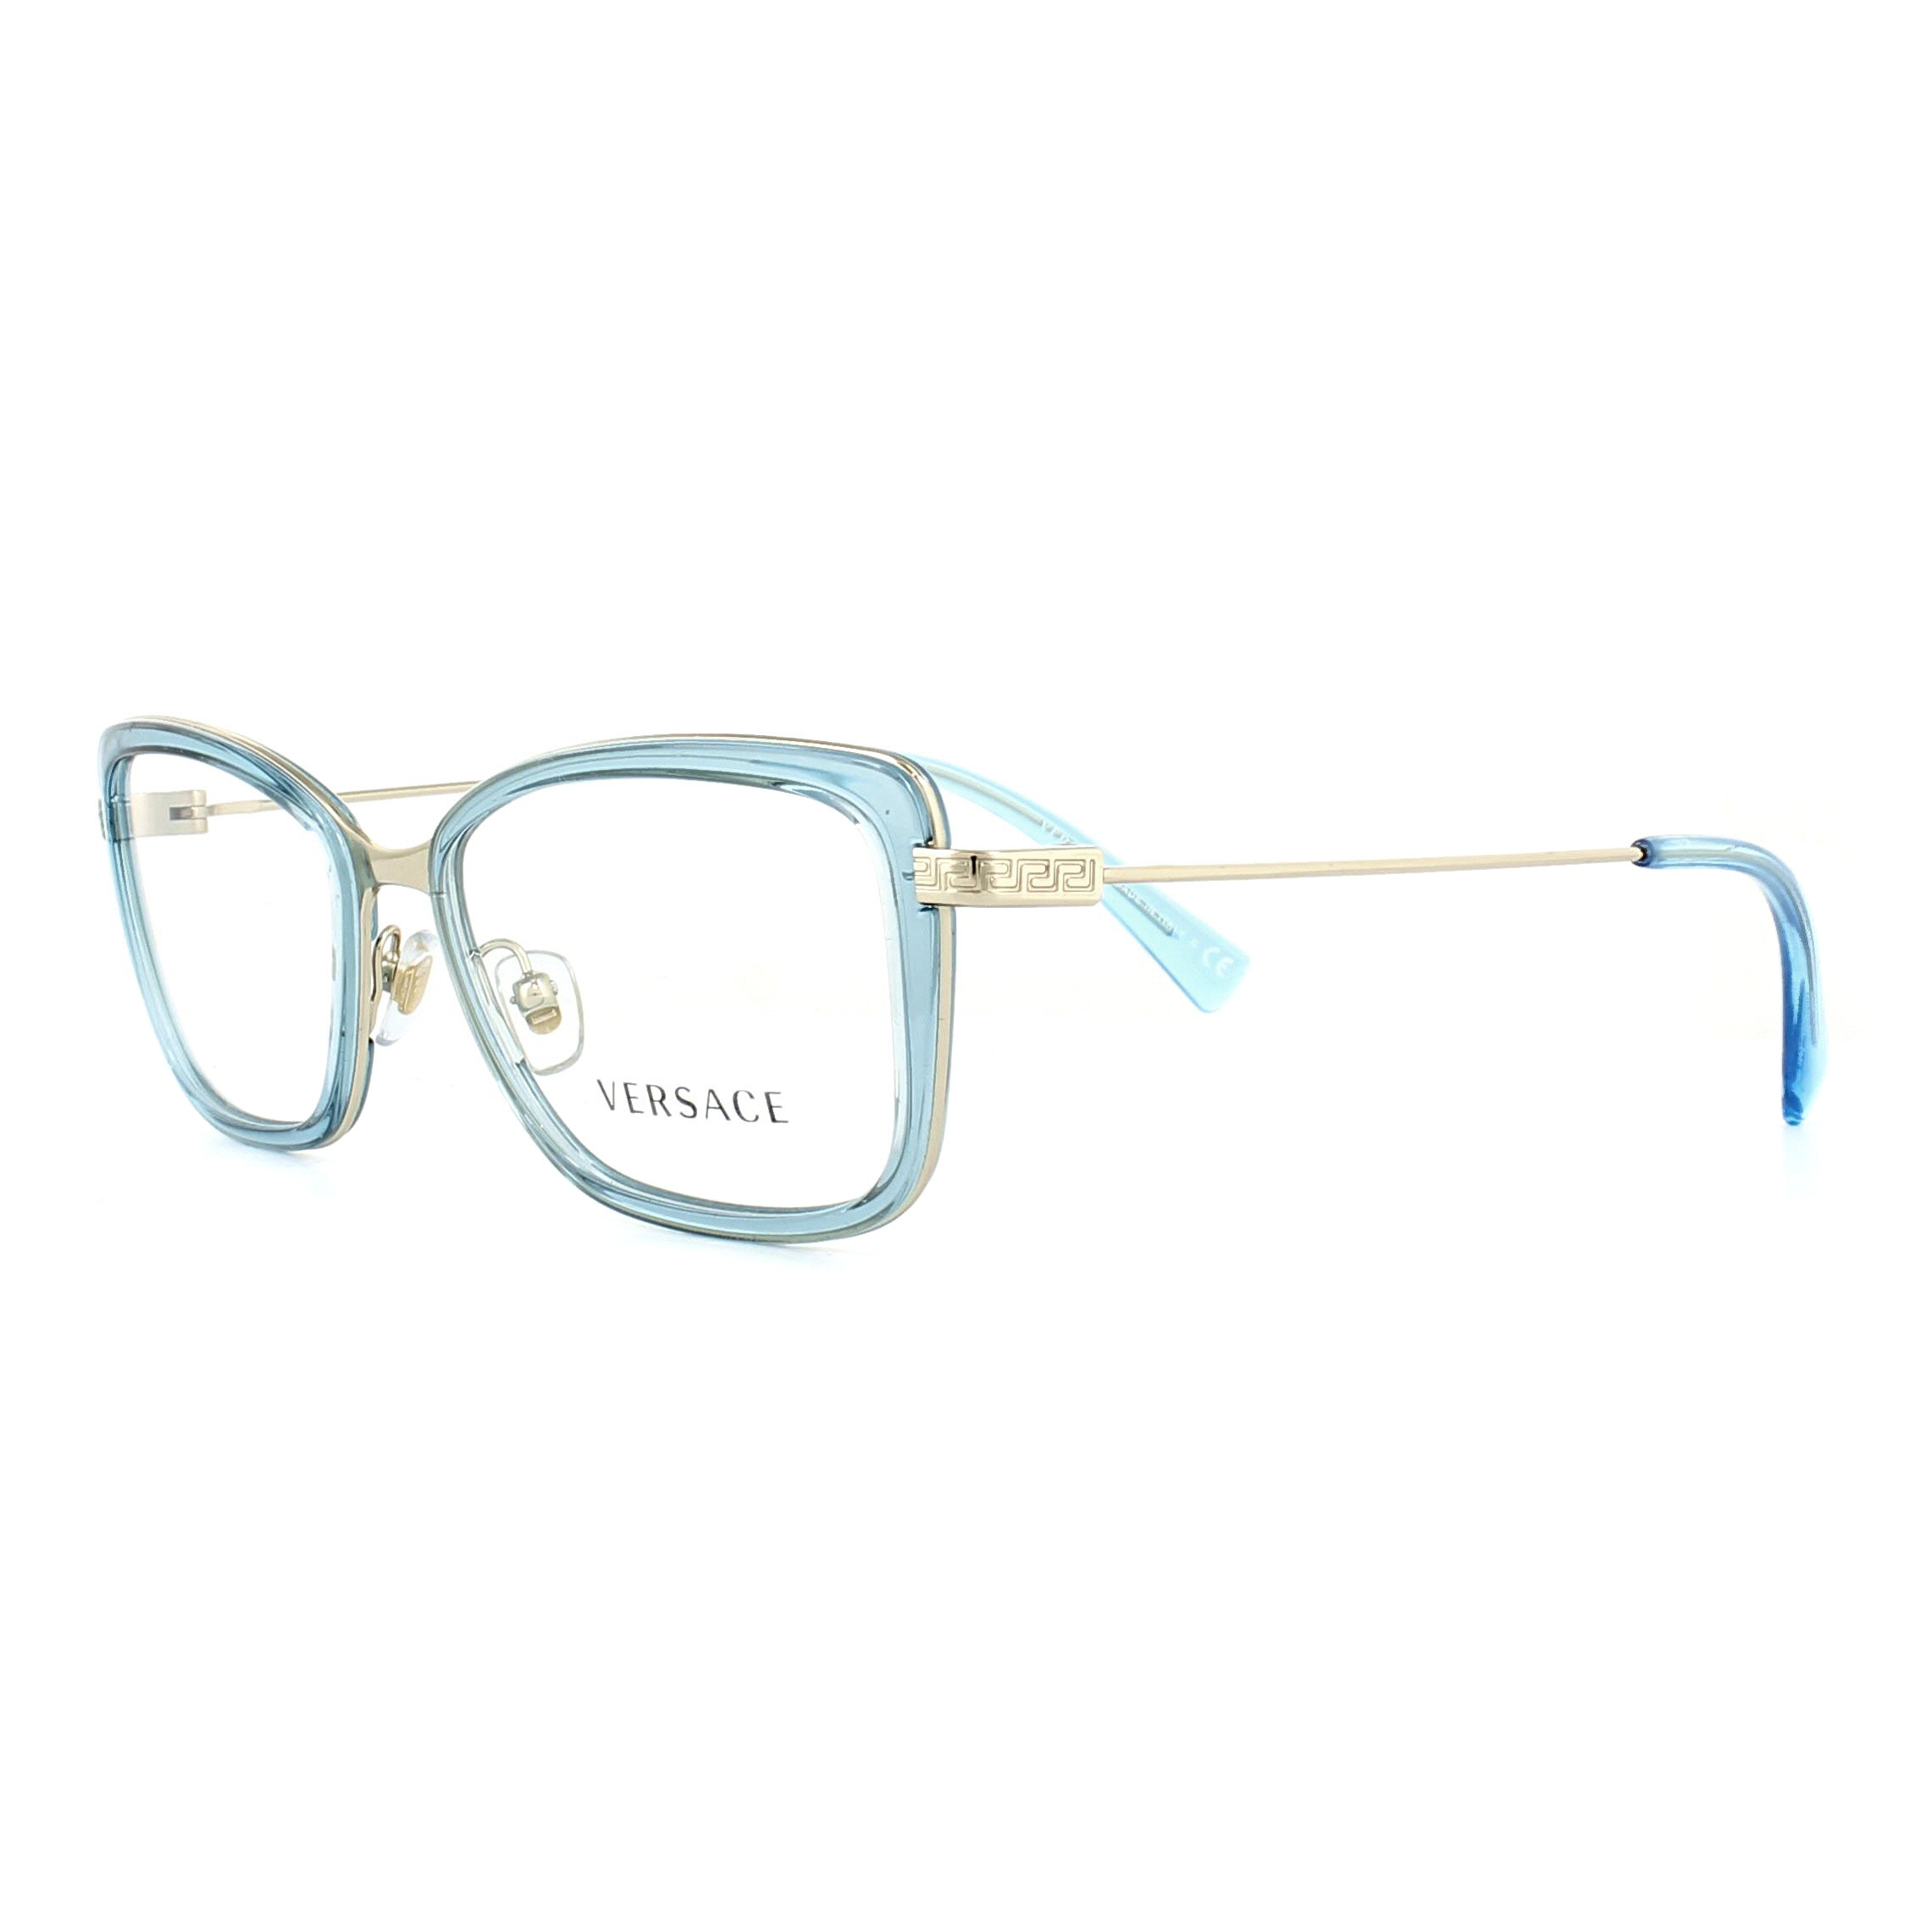 8ce7dbb75425f Sentinel Versace Glasses Frames 1243 1403 Green and Pale Gold 52mm Womens